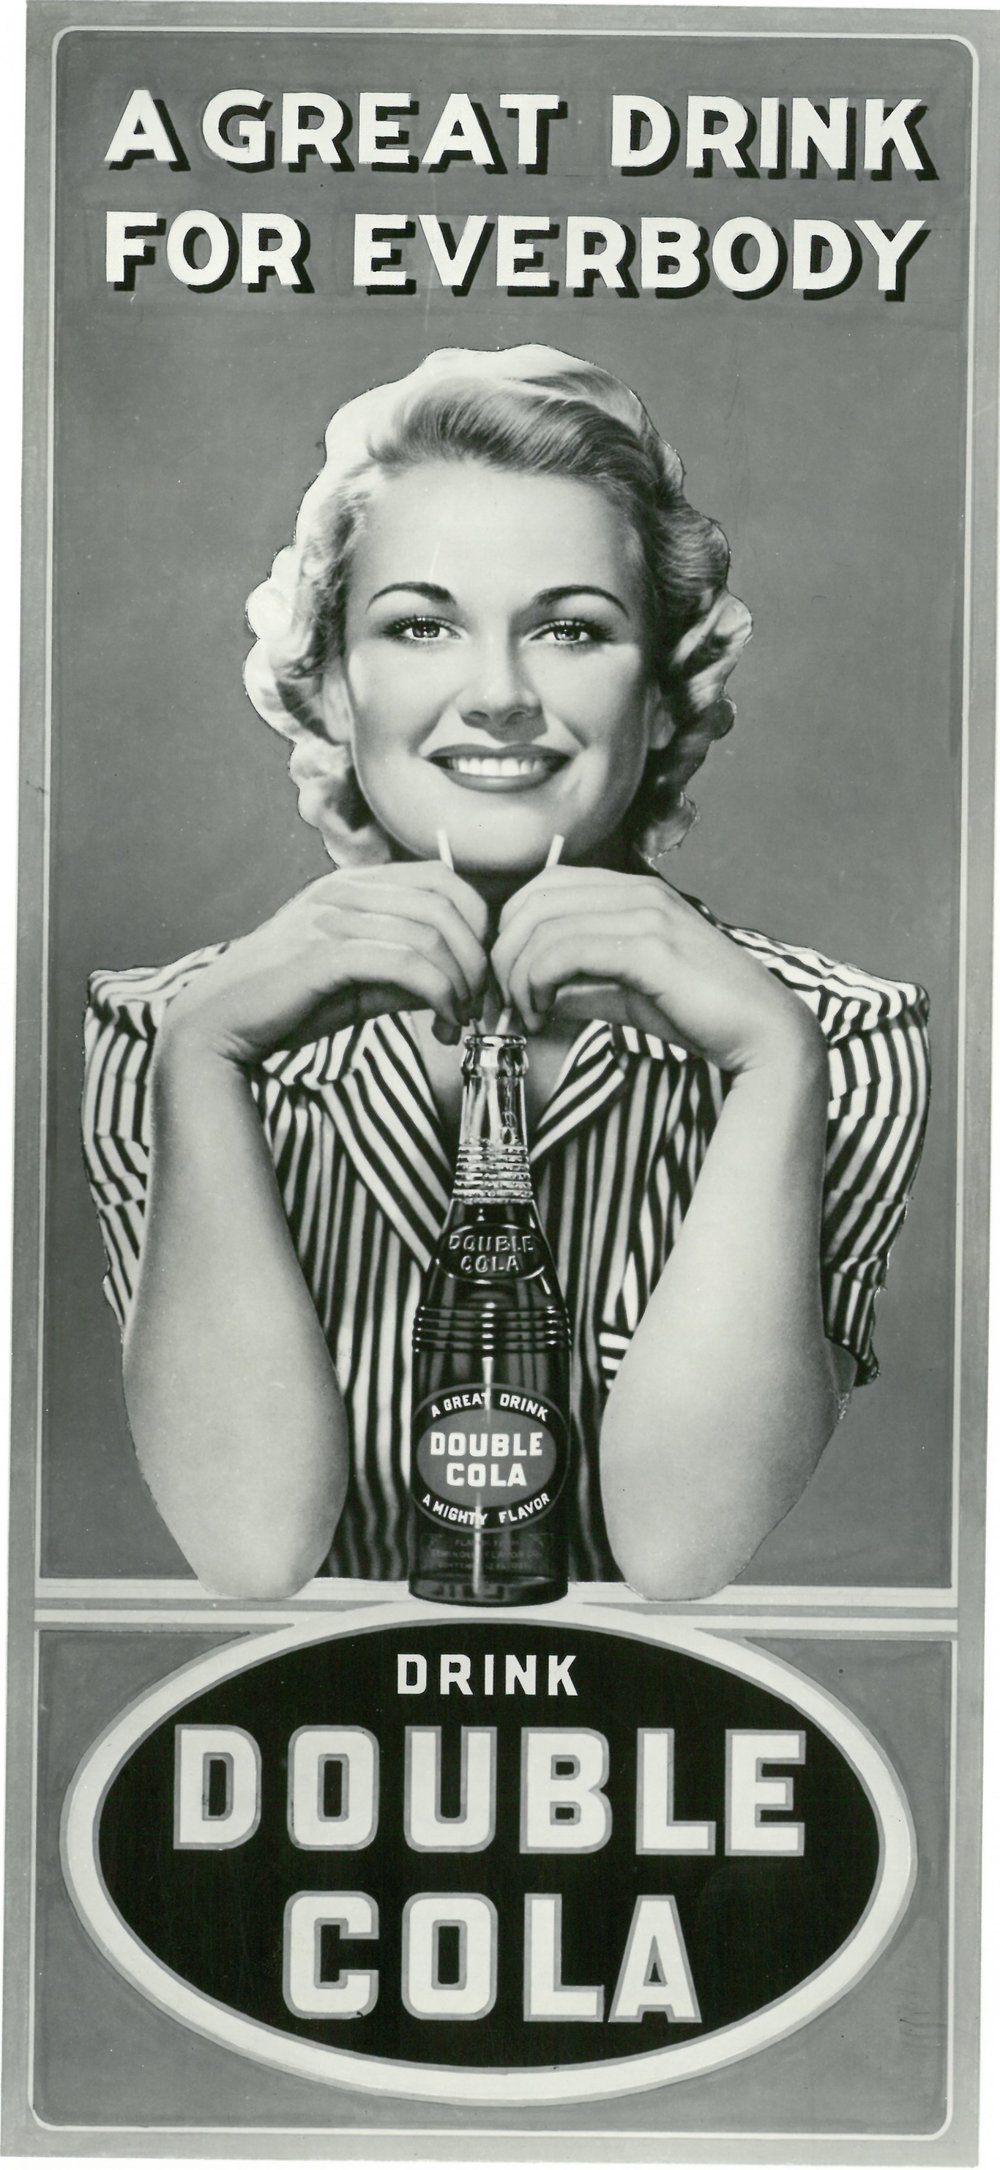 1944 - Great Drink for Everyone.jpg